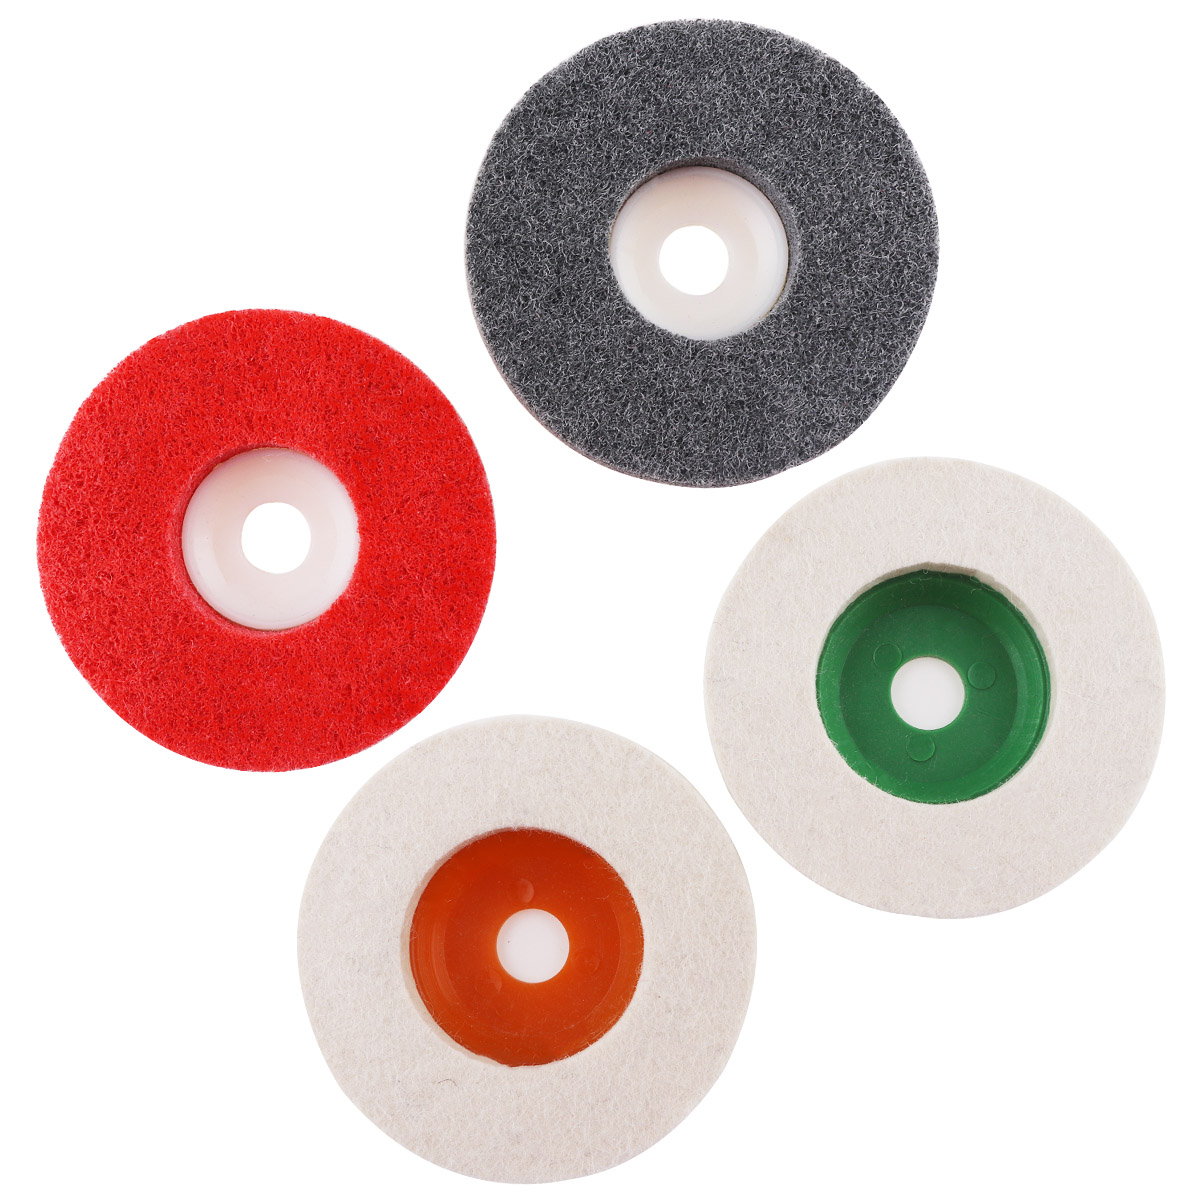 4pcs/lot  Multifunction Wool Polishing Disc Pads And Nylon Wheels With 100mm External Diameter And 16mm Inner Diameter